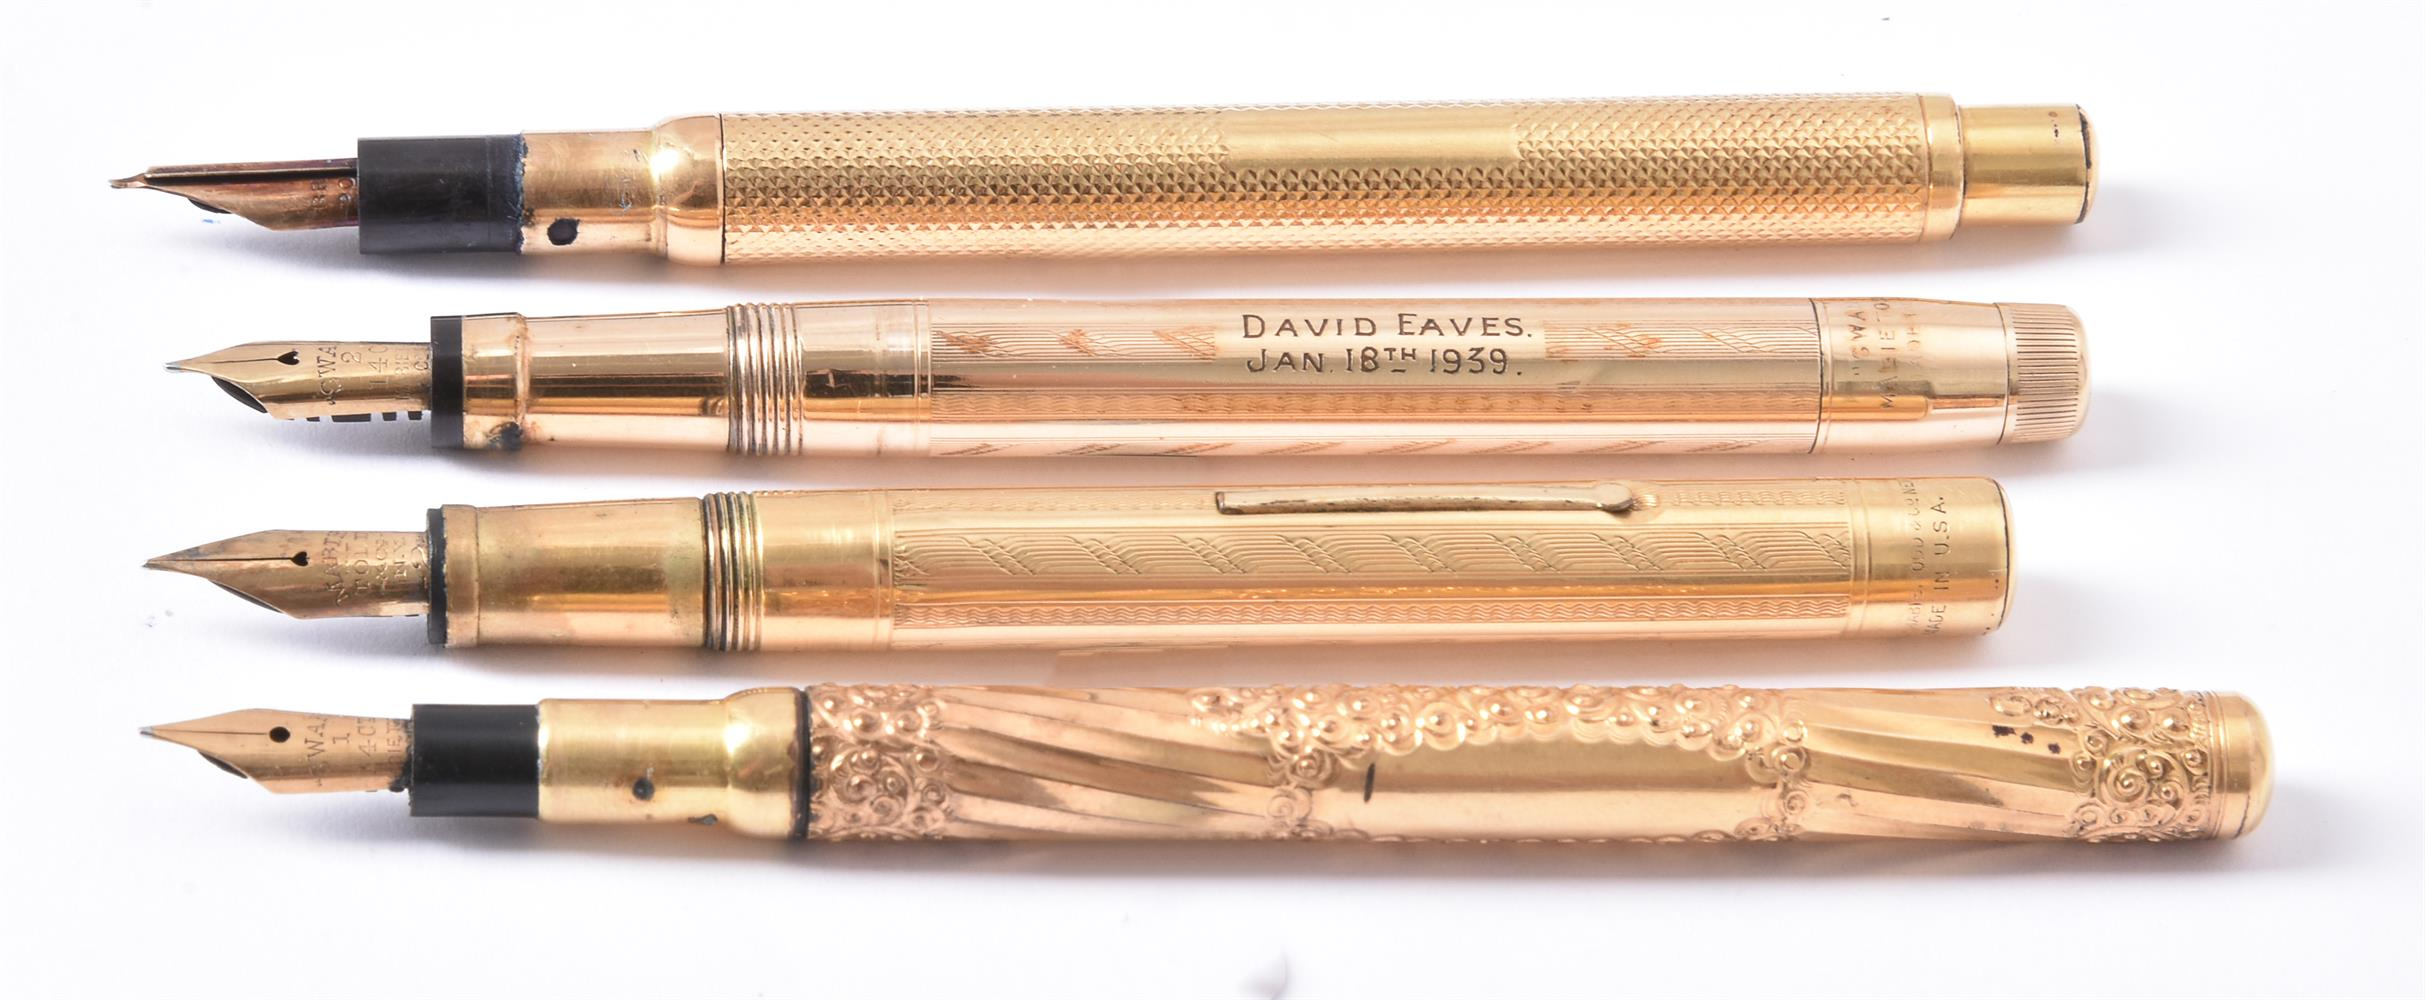 Mabie Todd & Co., Swan, a gilt metal fountain pen - Image 2 of 4